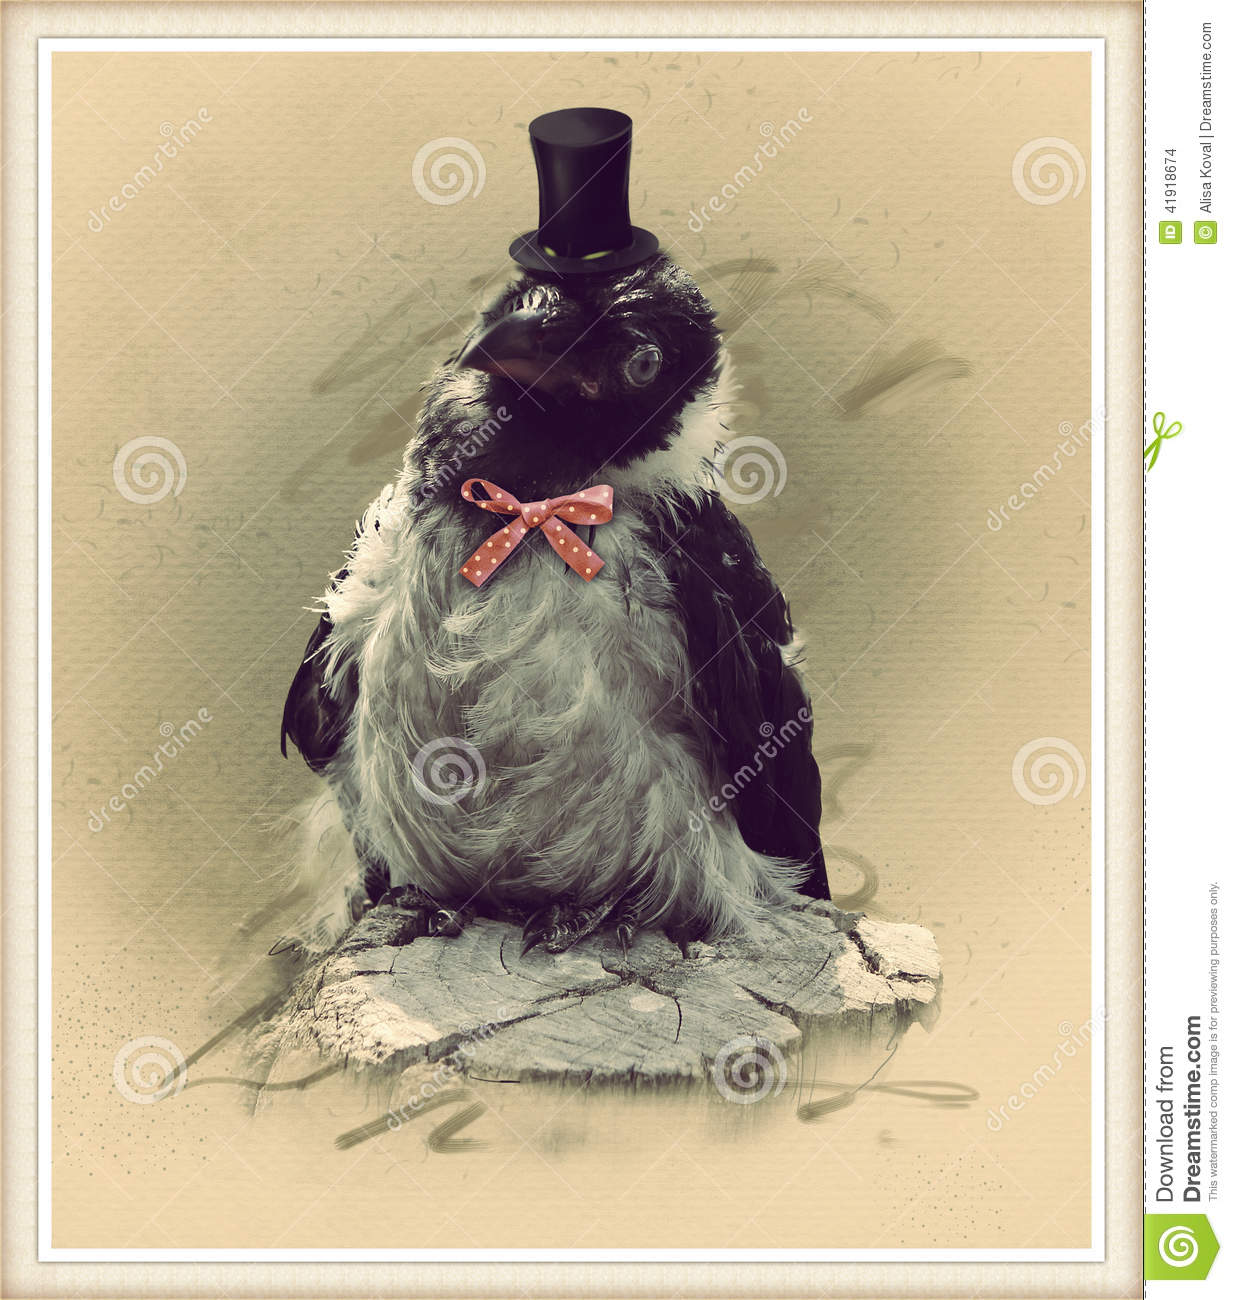 Vintage Style Photo Of The Funny Crow Stock Photo Image Of Dressed